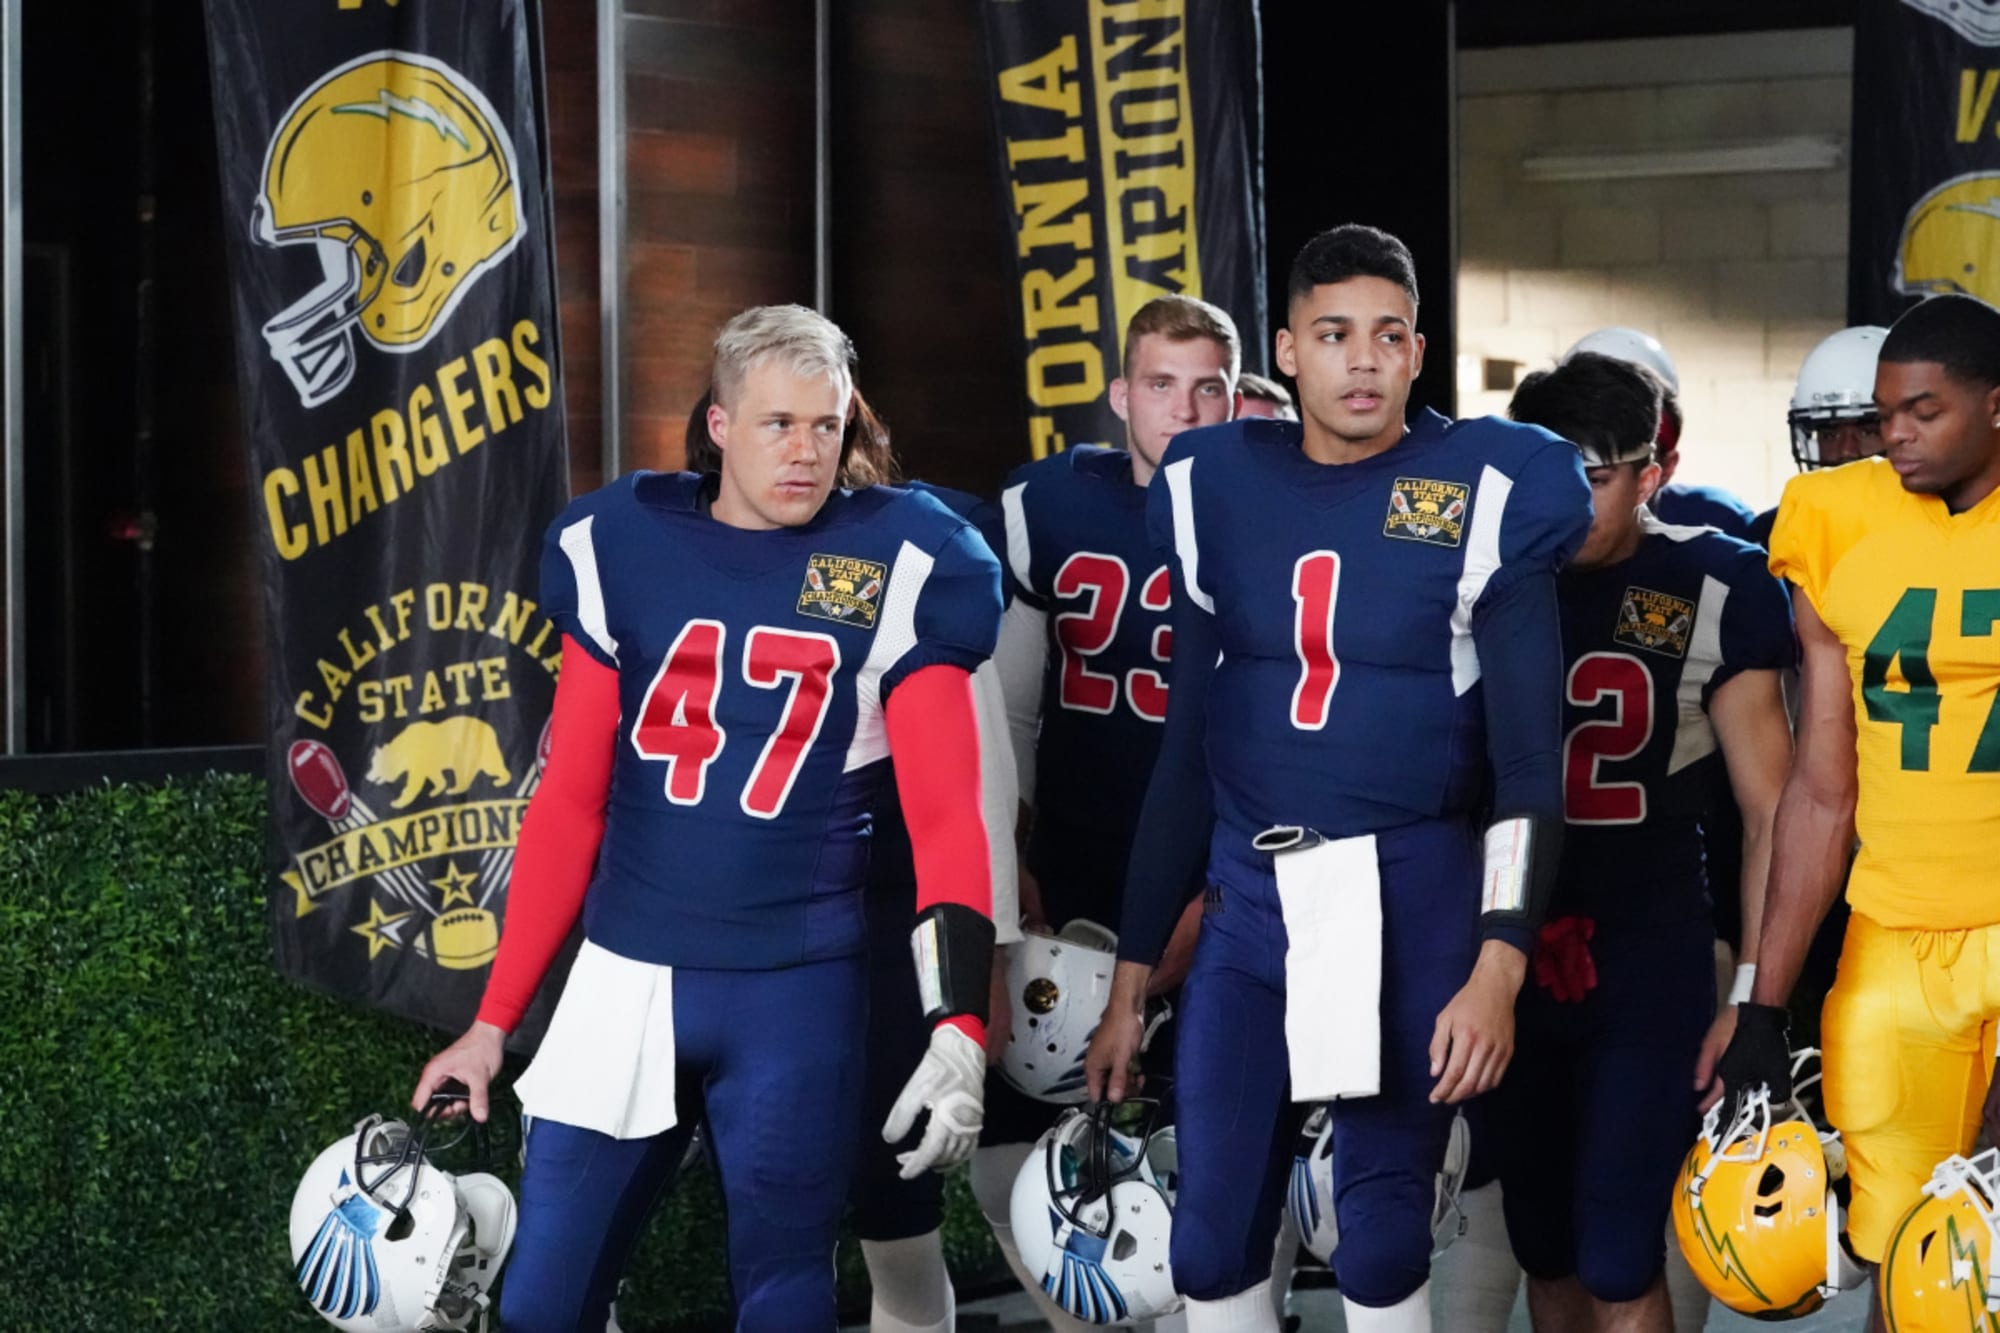 All American season 4: Did the Beverly really win the state championship?